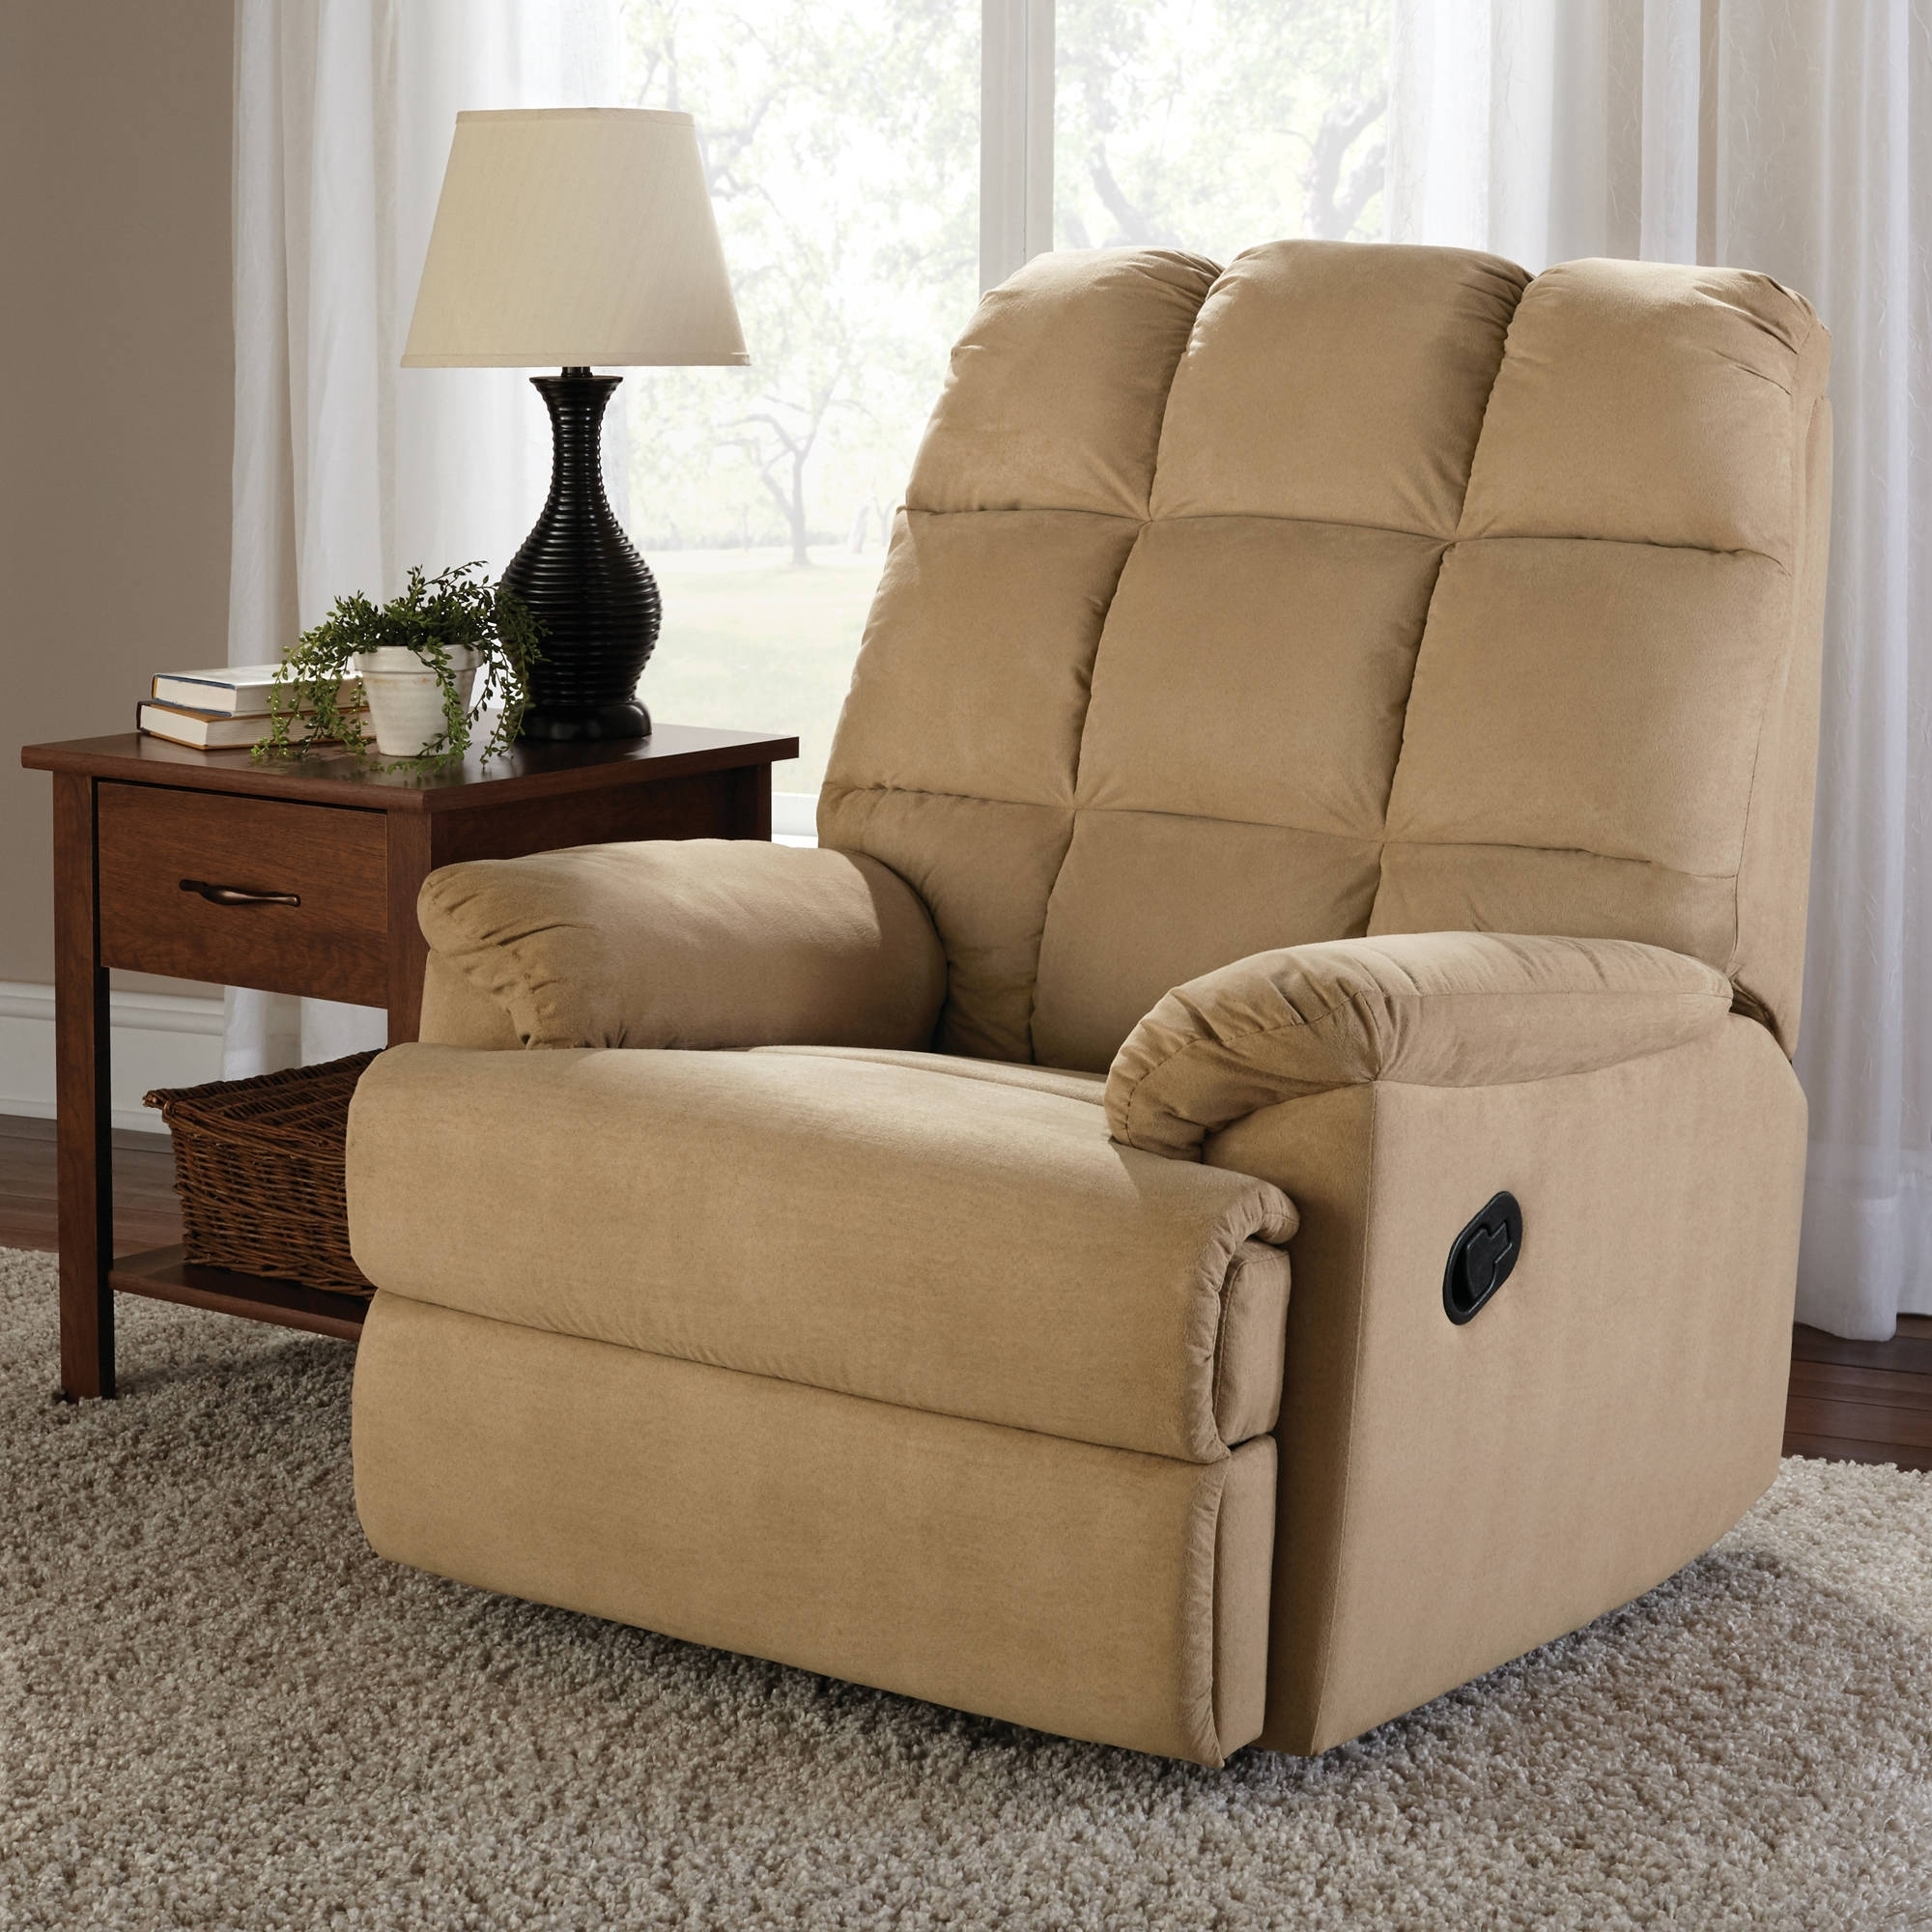 Widely Used Mainstays Microsuede Rocker Recliner – Walmart For Walmart Rocking Chairs (View 14 of 15)